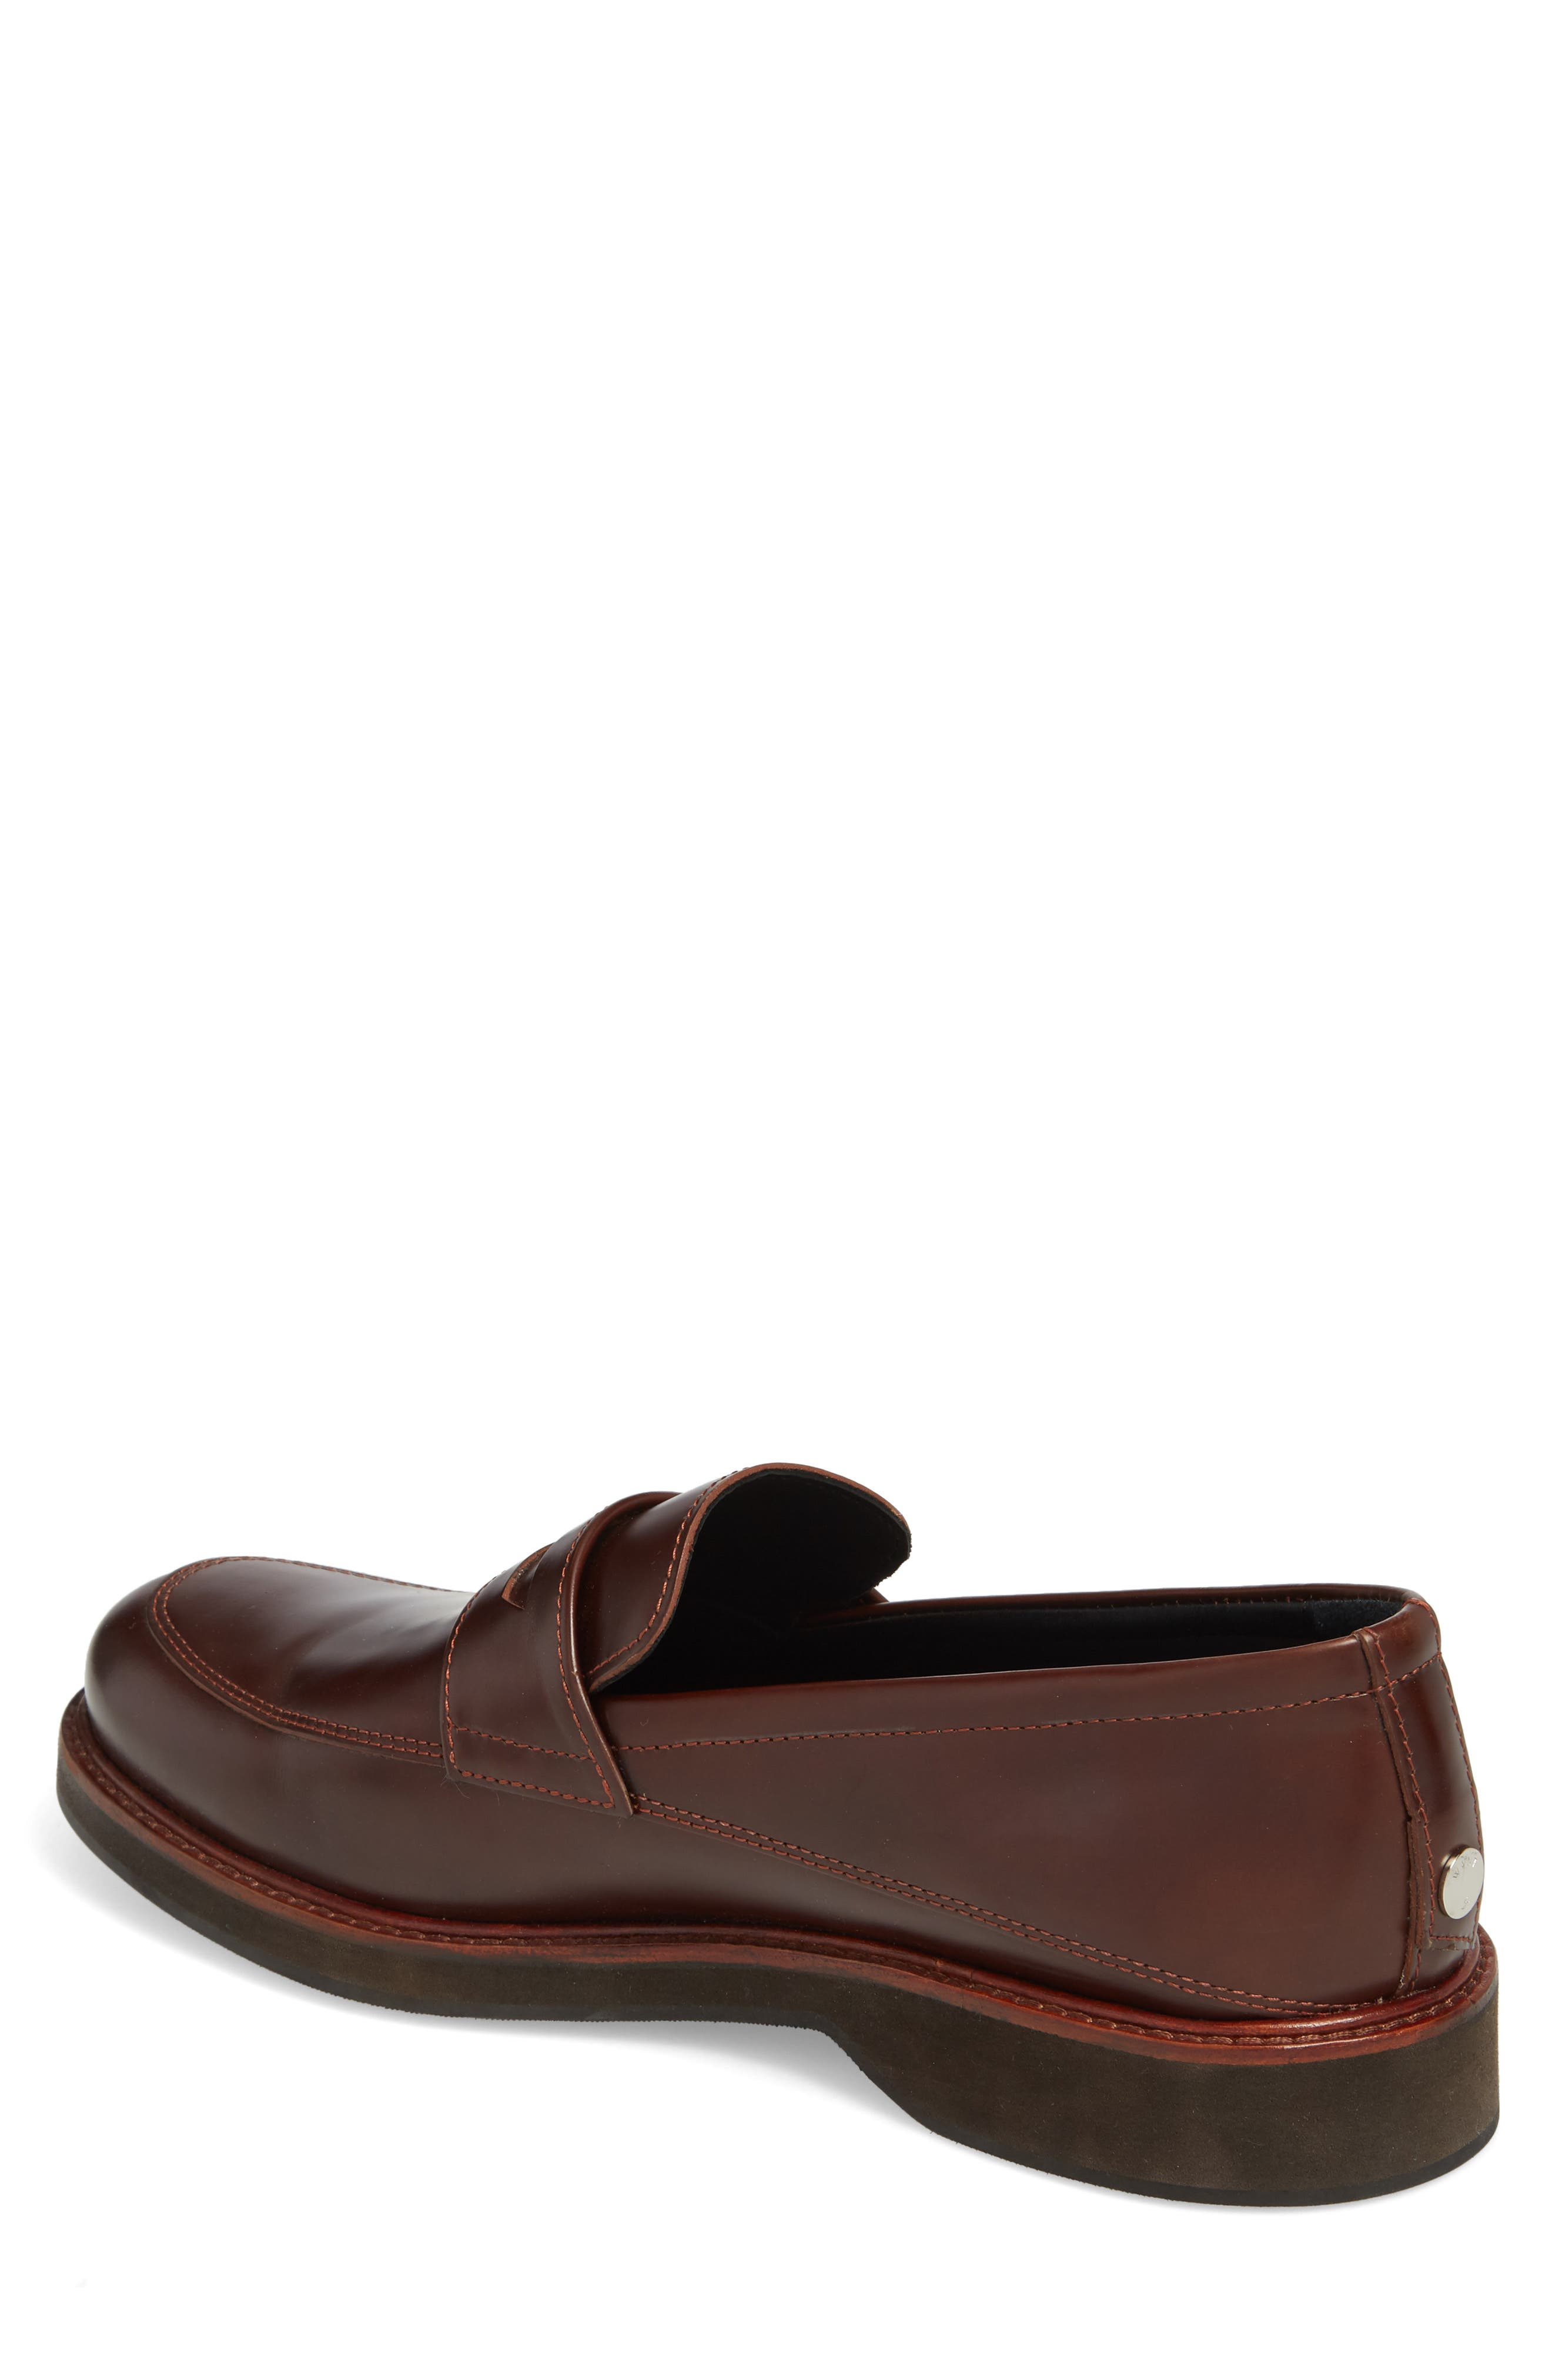 'Marcos' Loafer,                             Alternate thumbnail 2, color,                             Multi Brown/ Brown